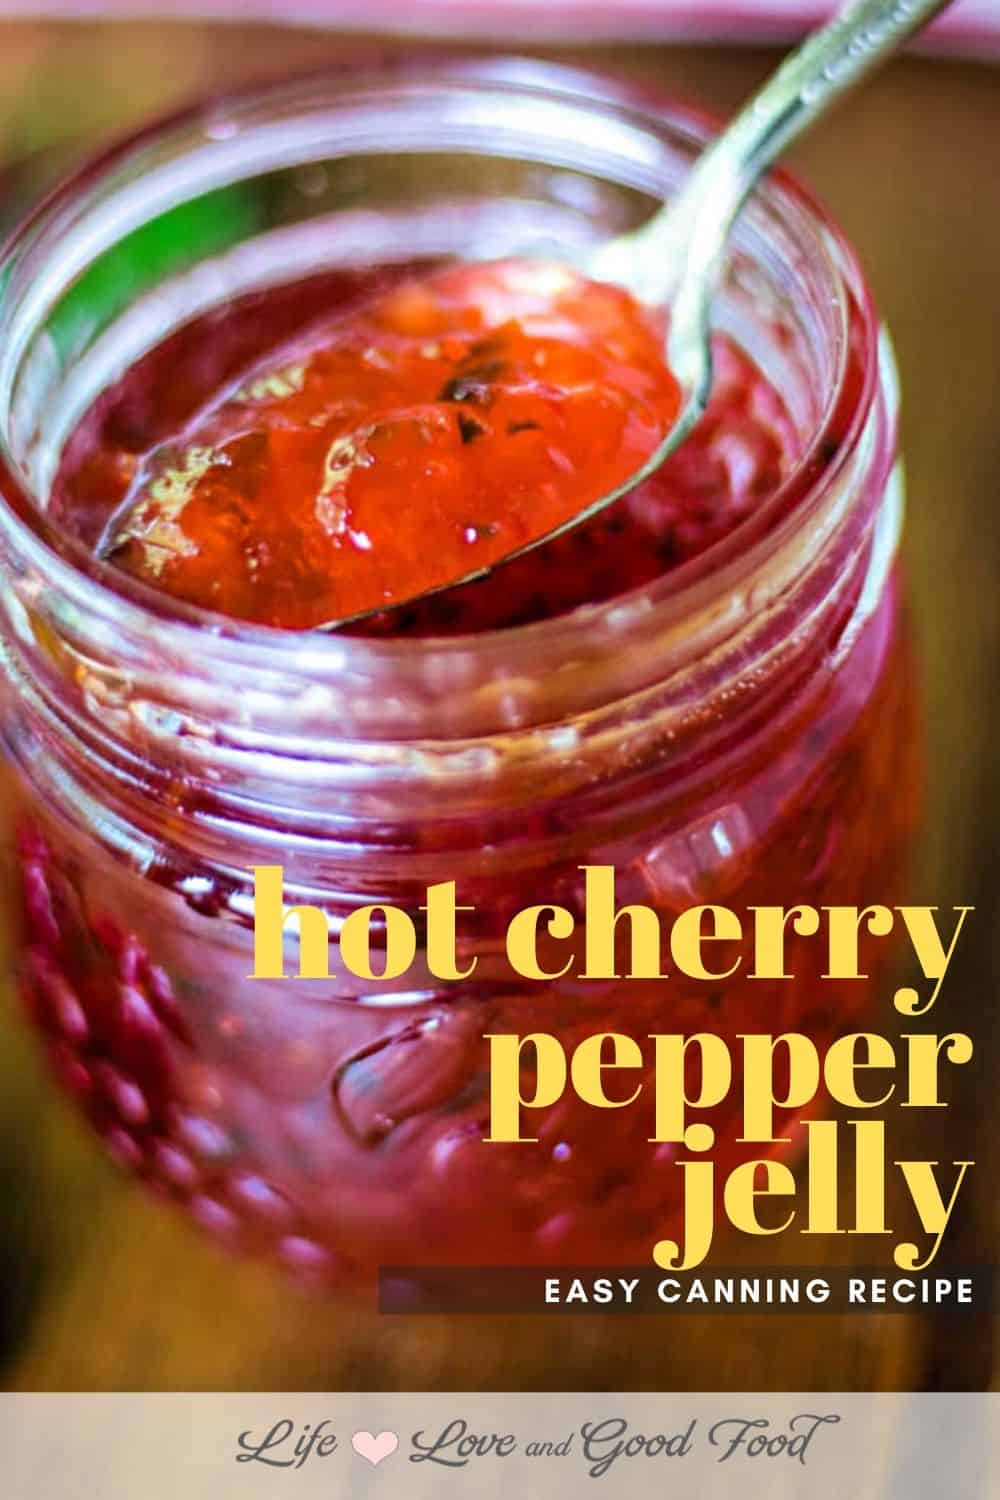 Made with fresh cherries, red bell pepper, and jalapeño peppers, Hot Cherry Pepper Jelly is deliciously sweet and spicy hot. Serve it on toast or scones, use it to make easy cream cheese appetizers, or even as a cheese board accompaniment.